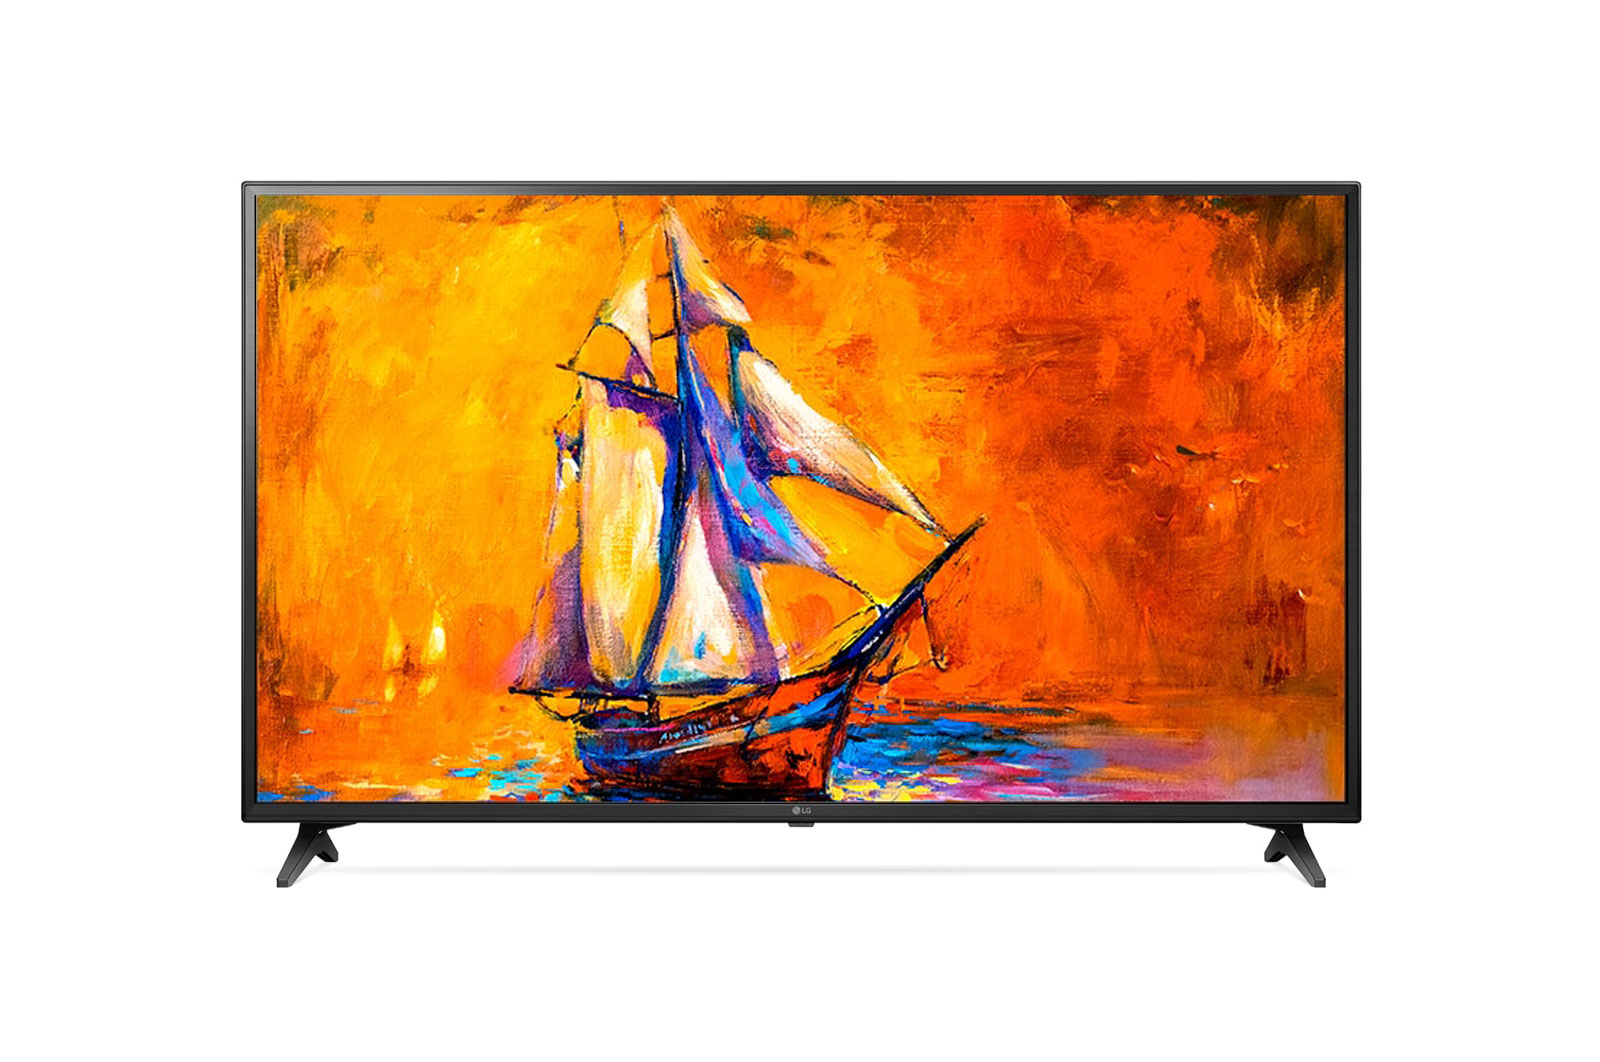 цена на Телевизор LG 55UK6200 LED 55 Black, Smart TV, 16:9, 3840x2160, USB, HDMI, Wi-Fi, RJ-45, DVB-T2, C, S2